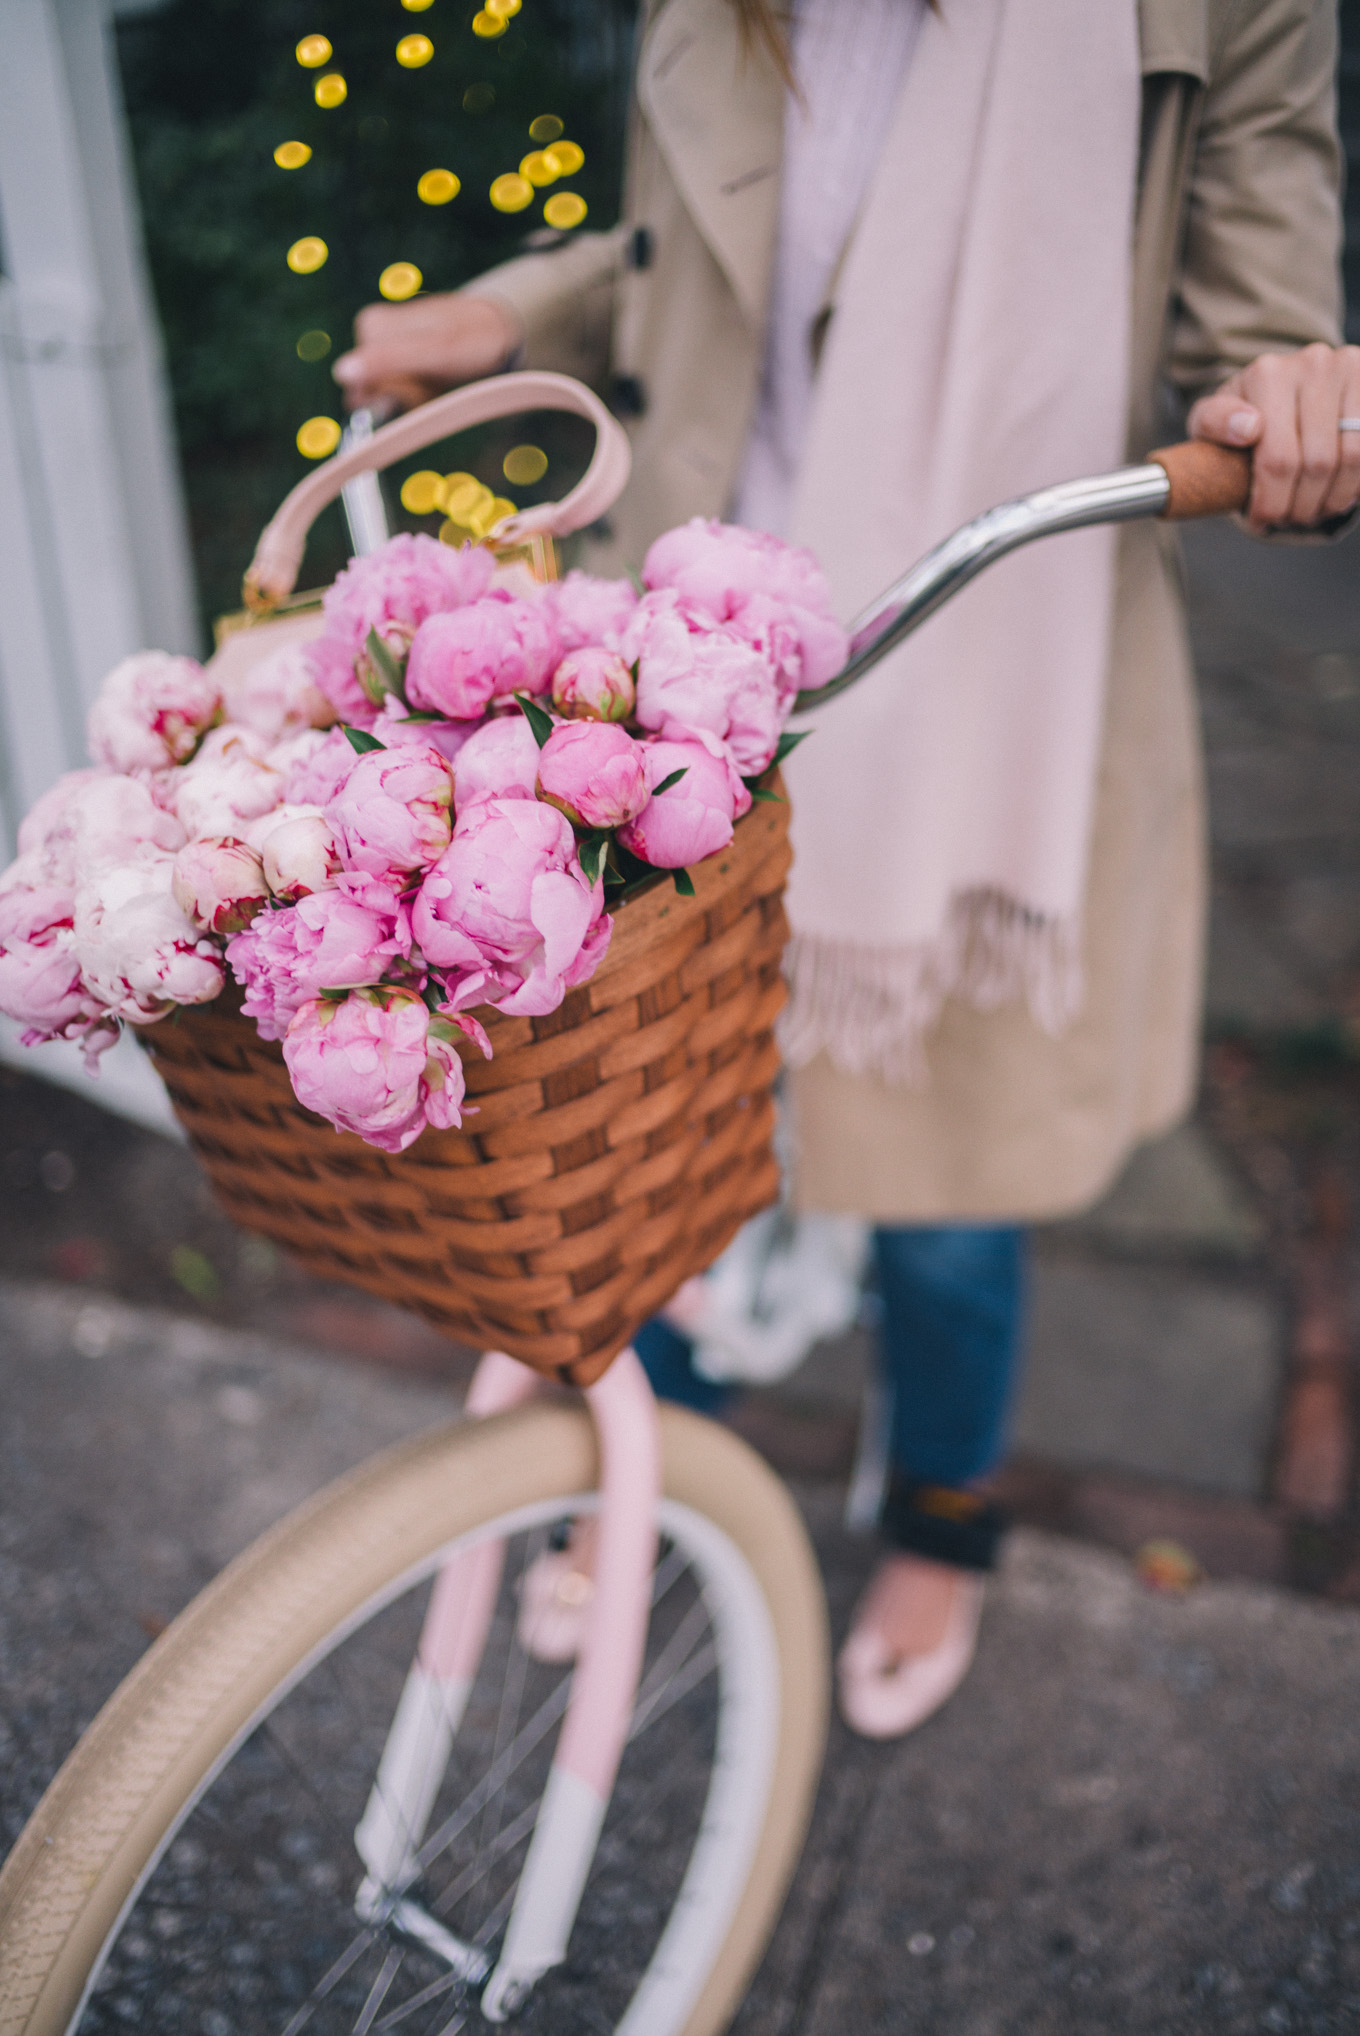 gmg-bike-peonies-1009169